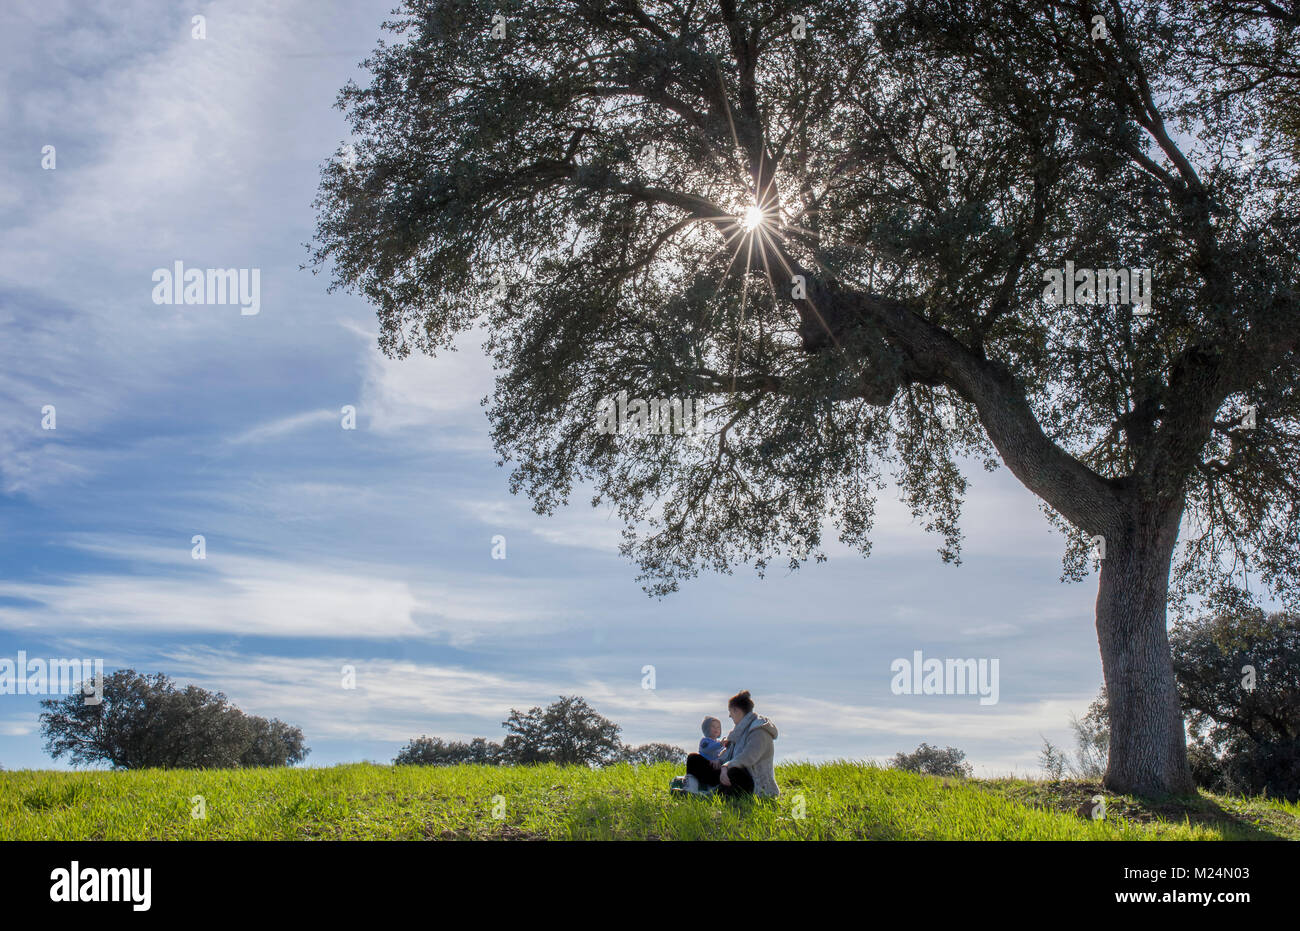 Mother and toddler son playing under acorn tree. Enjoying nature in family concept - Stock Image